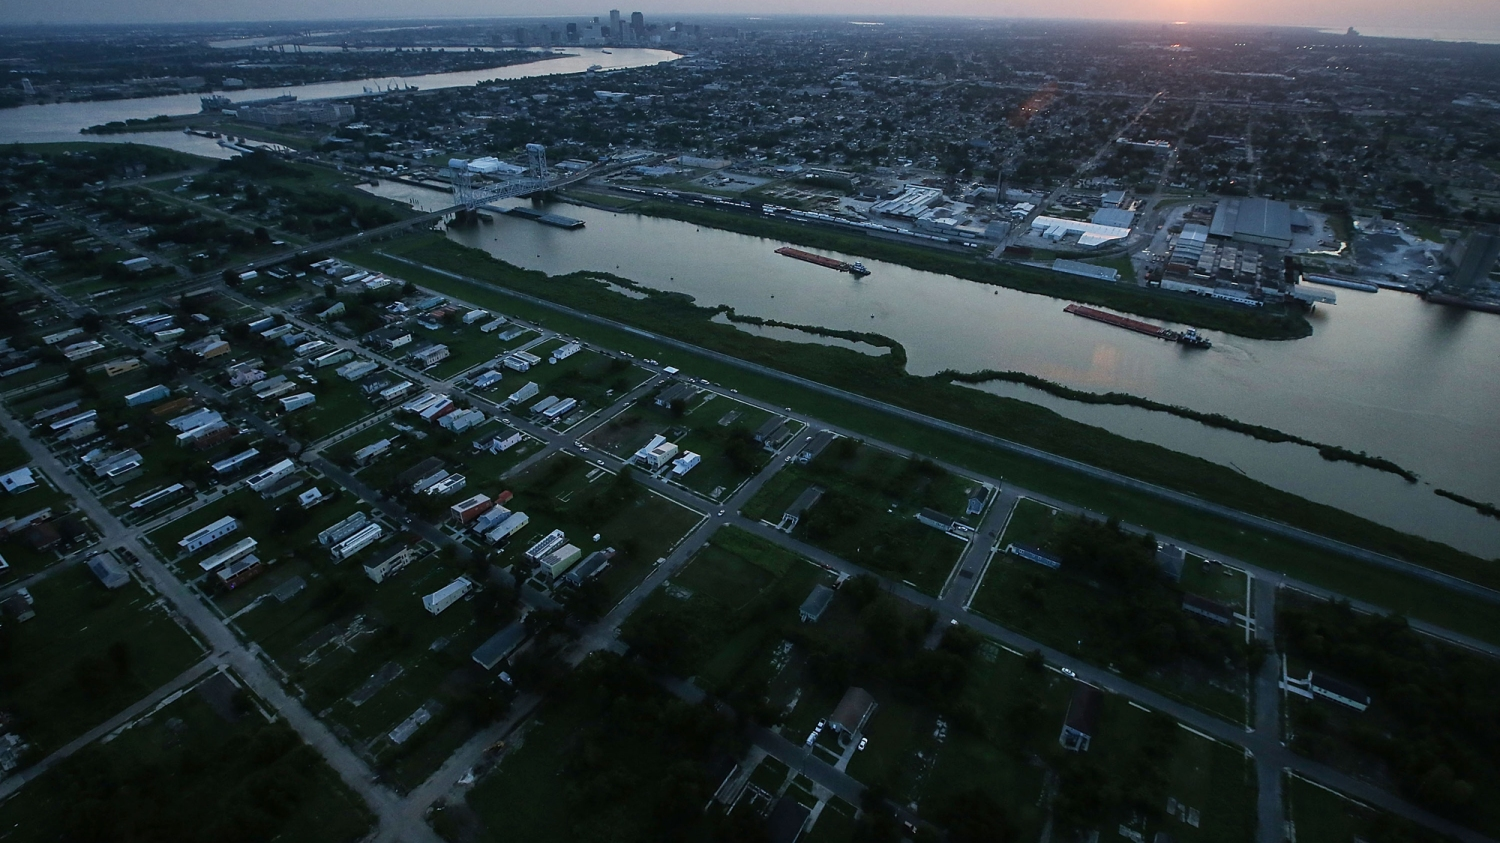 New Orleans Prepares To Mark 10 Year Anniversary Of Hurricane Katrina